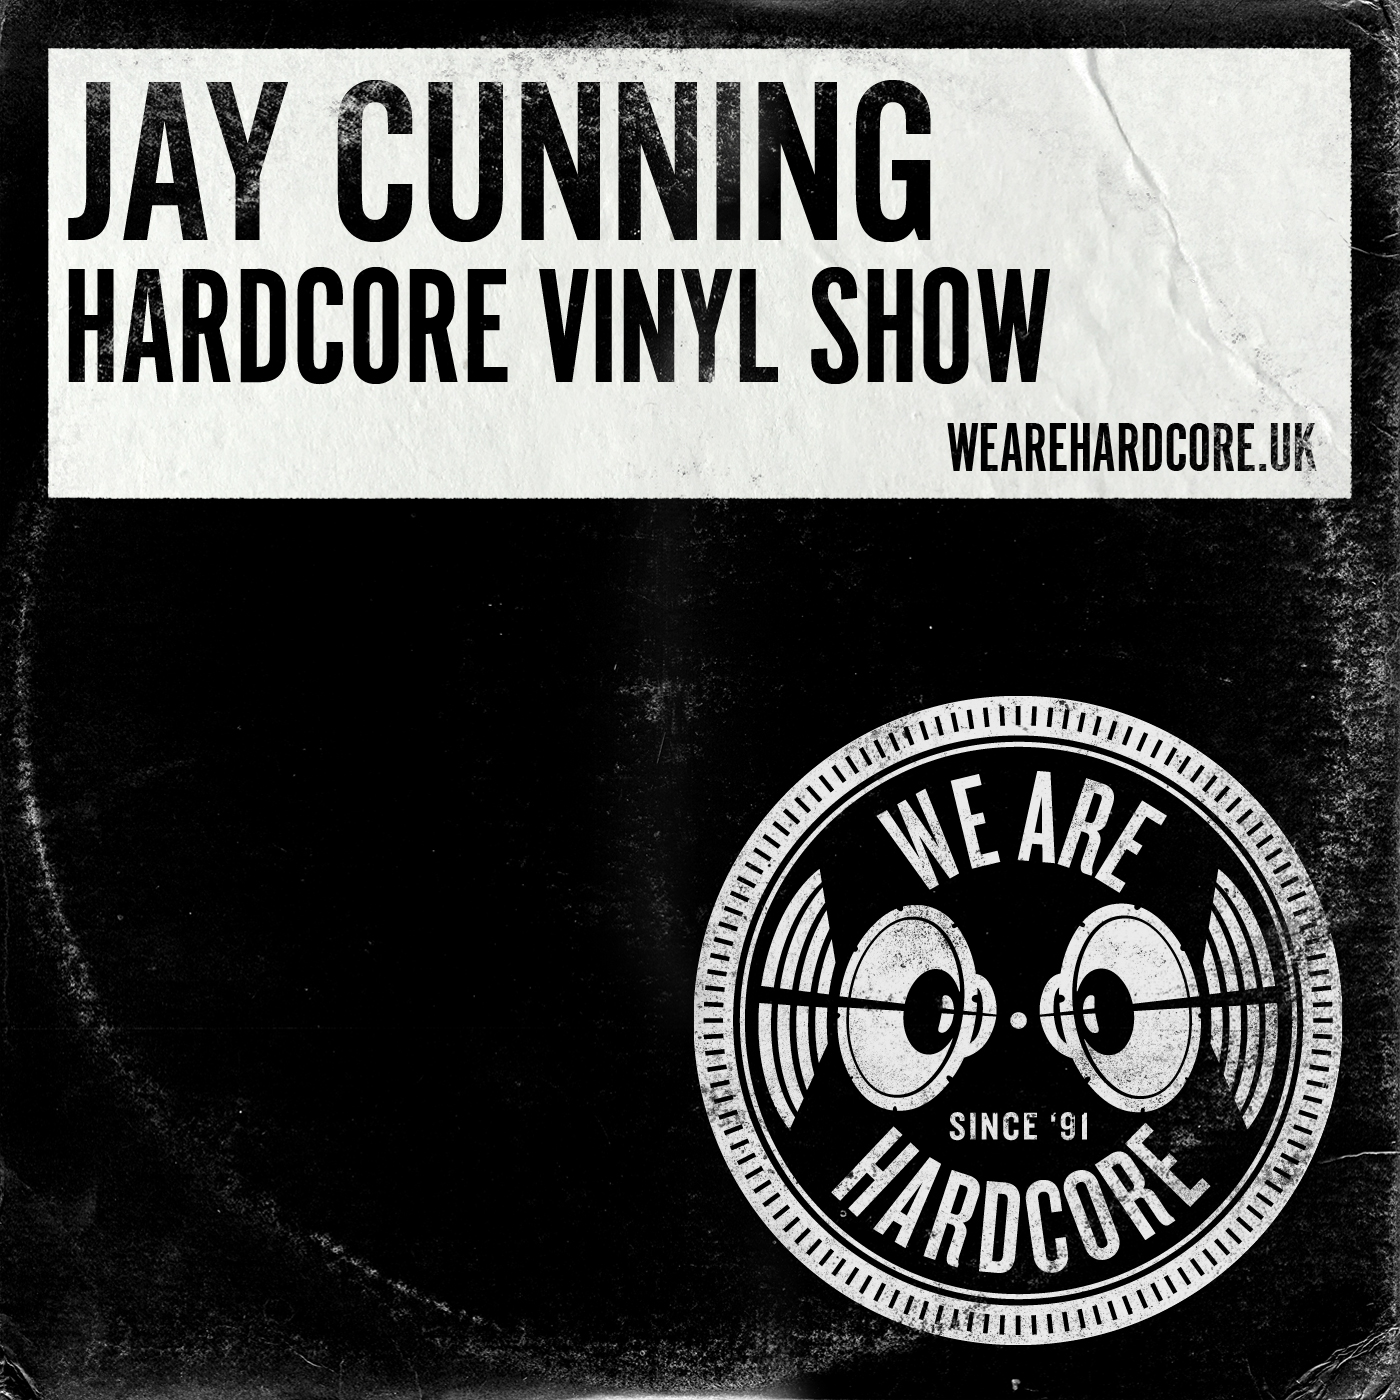 Hardcore Vinyl 1991-1993 - Jay Cunning WE ARE HARDCORE show